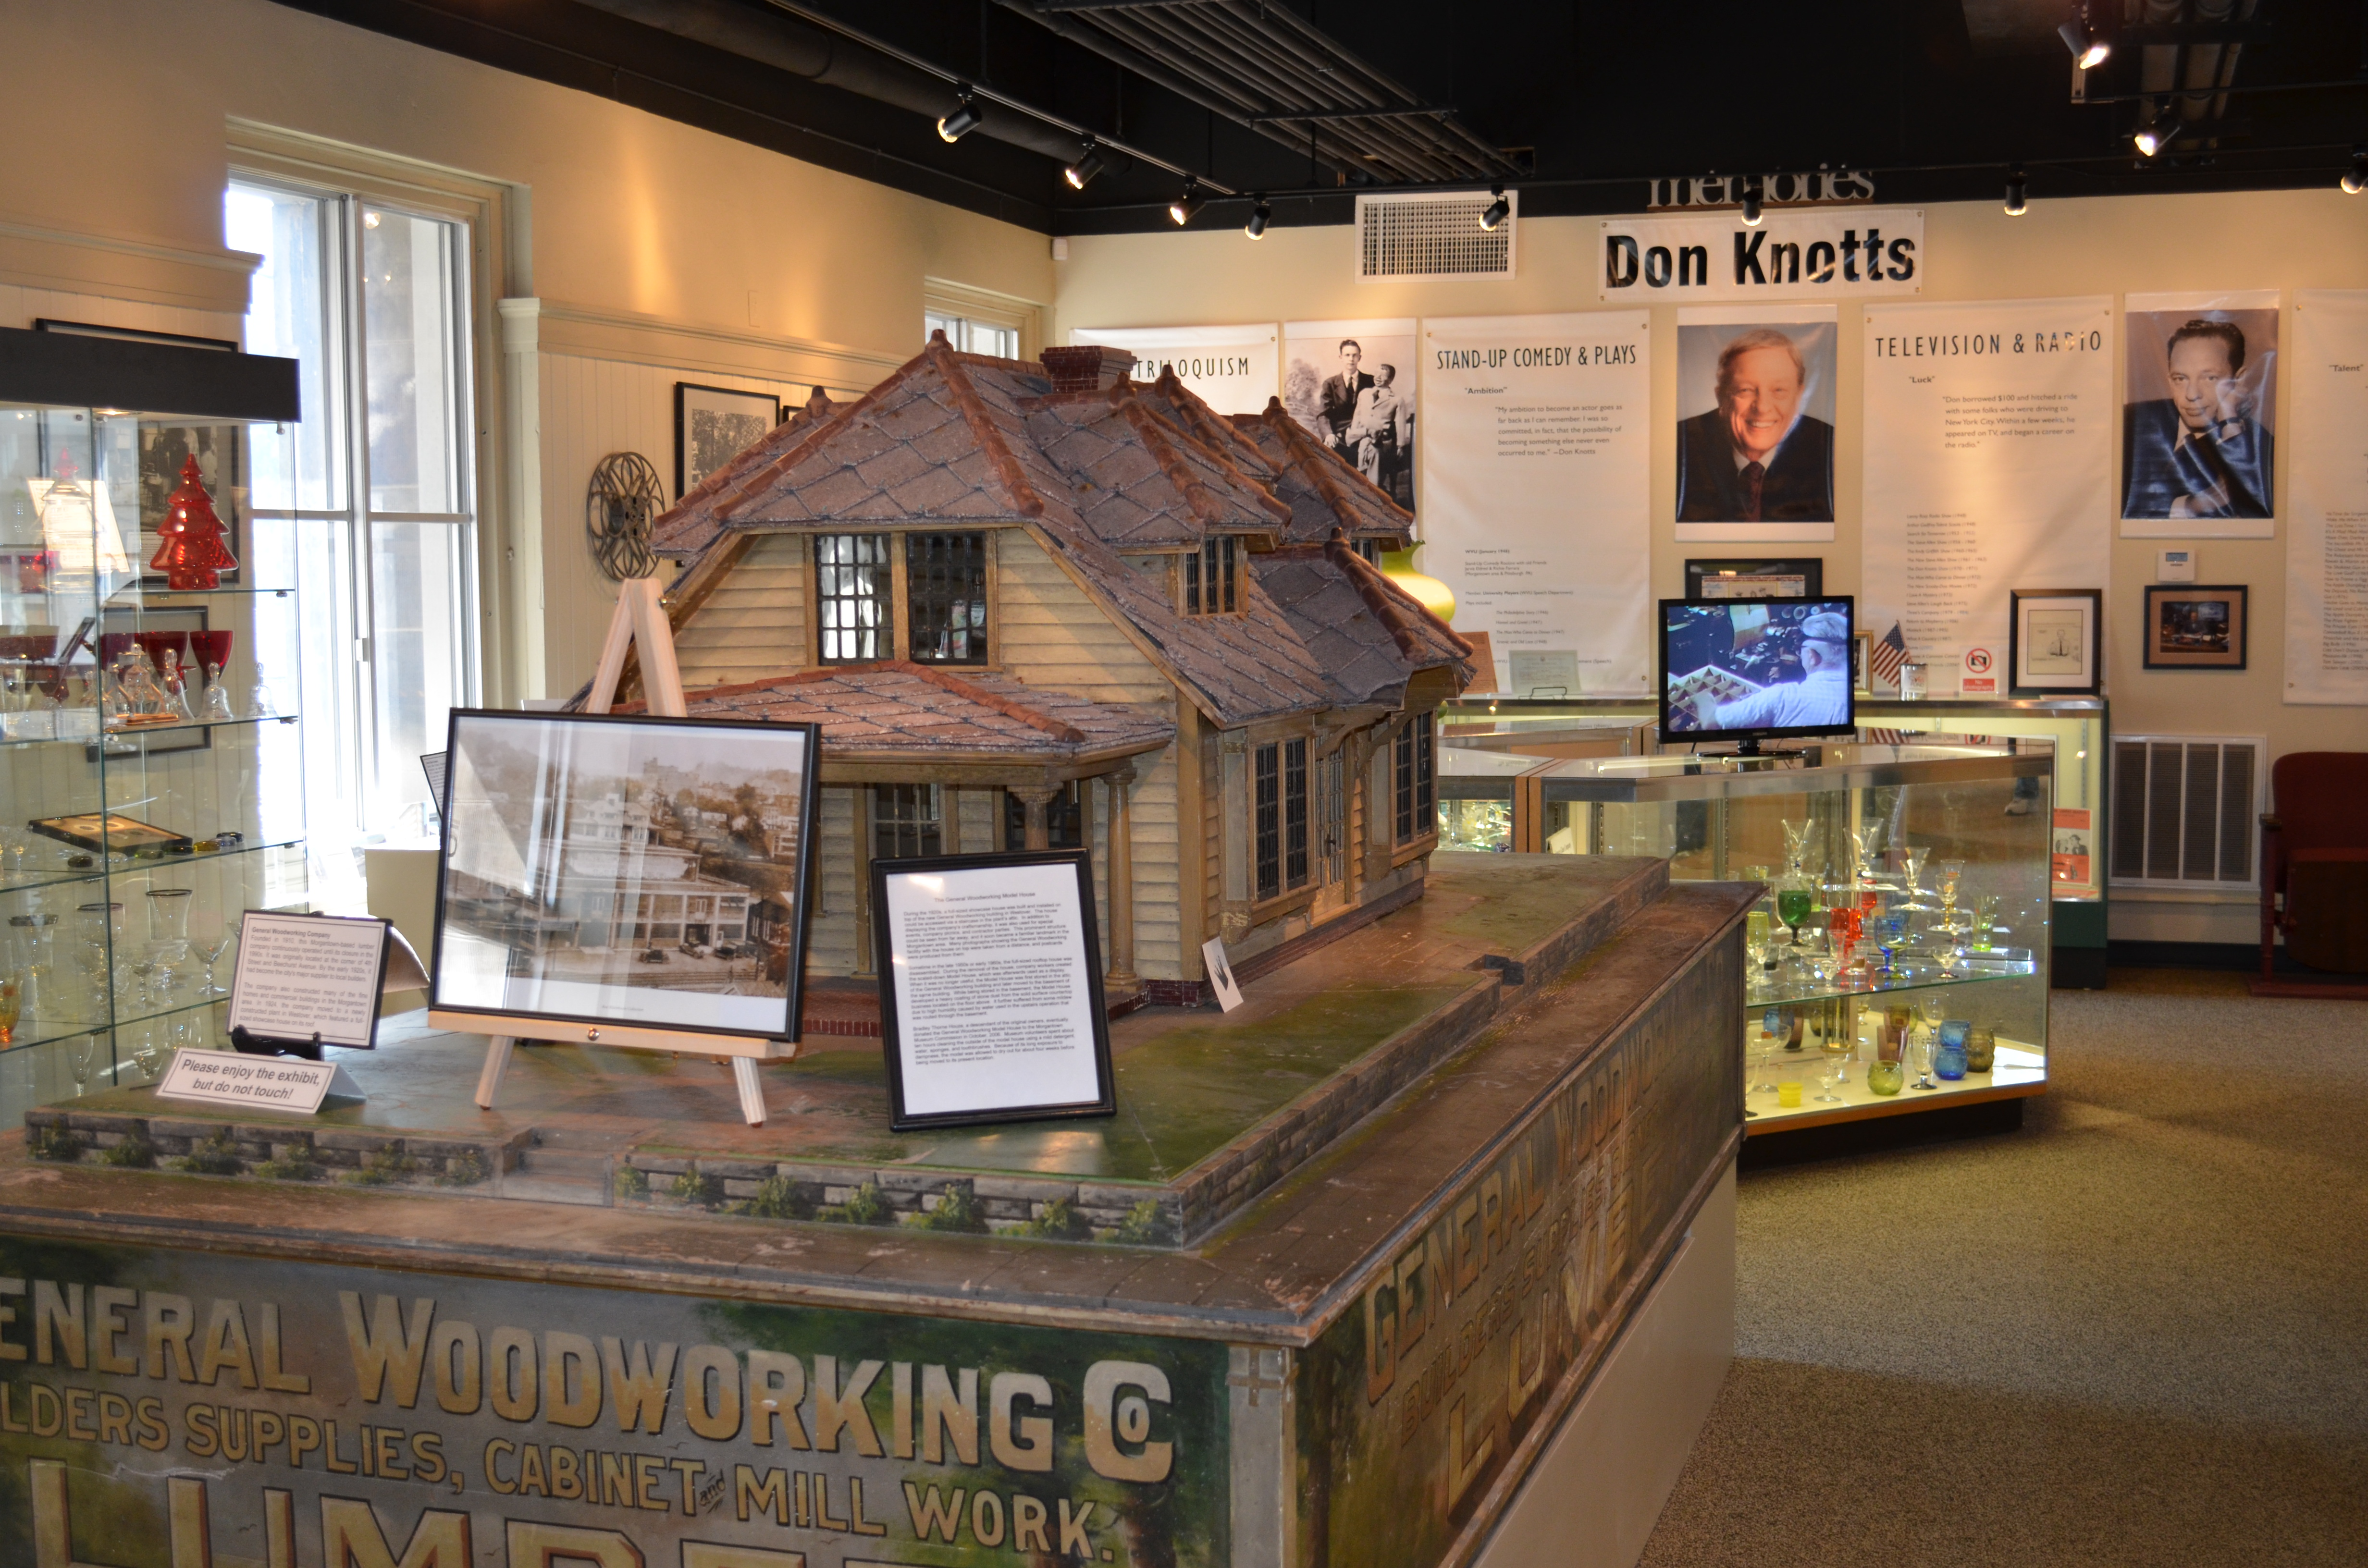 The museum's exhibits focus on the growth of the region in from the late 18th century to the present.